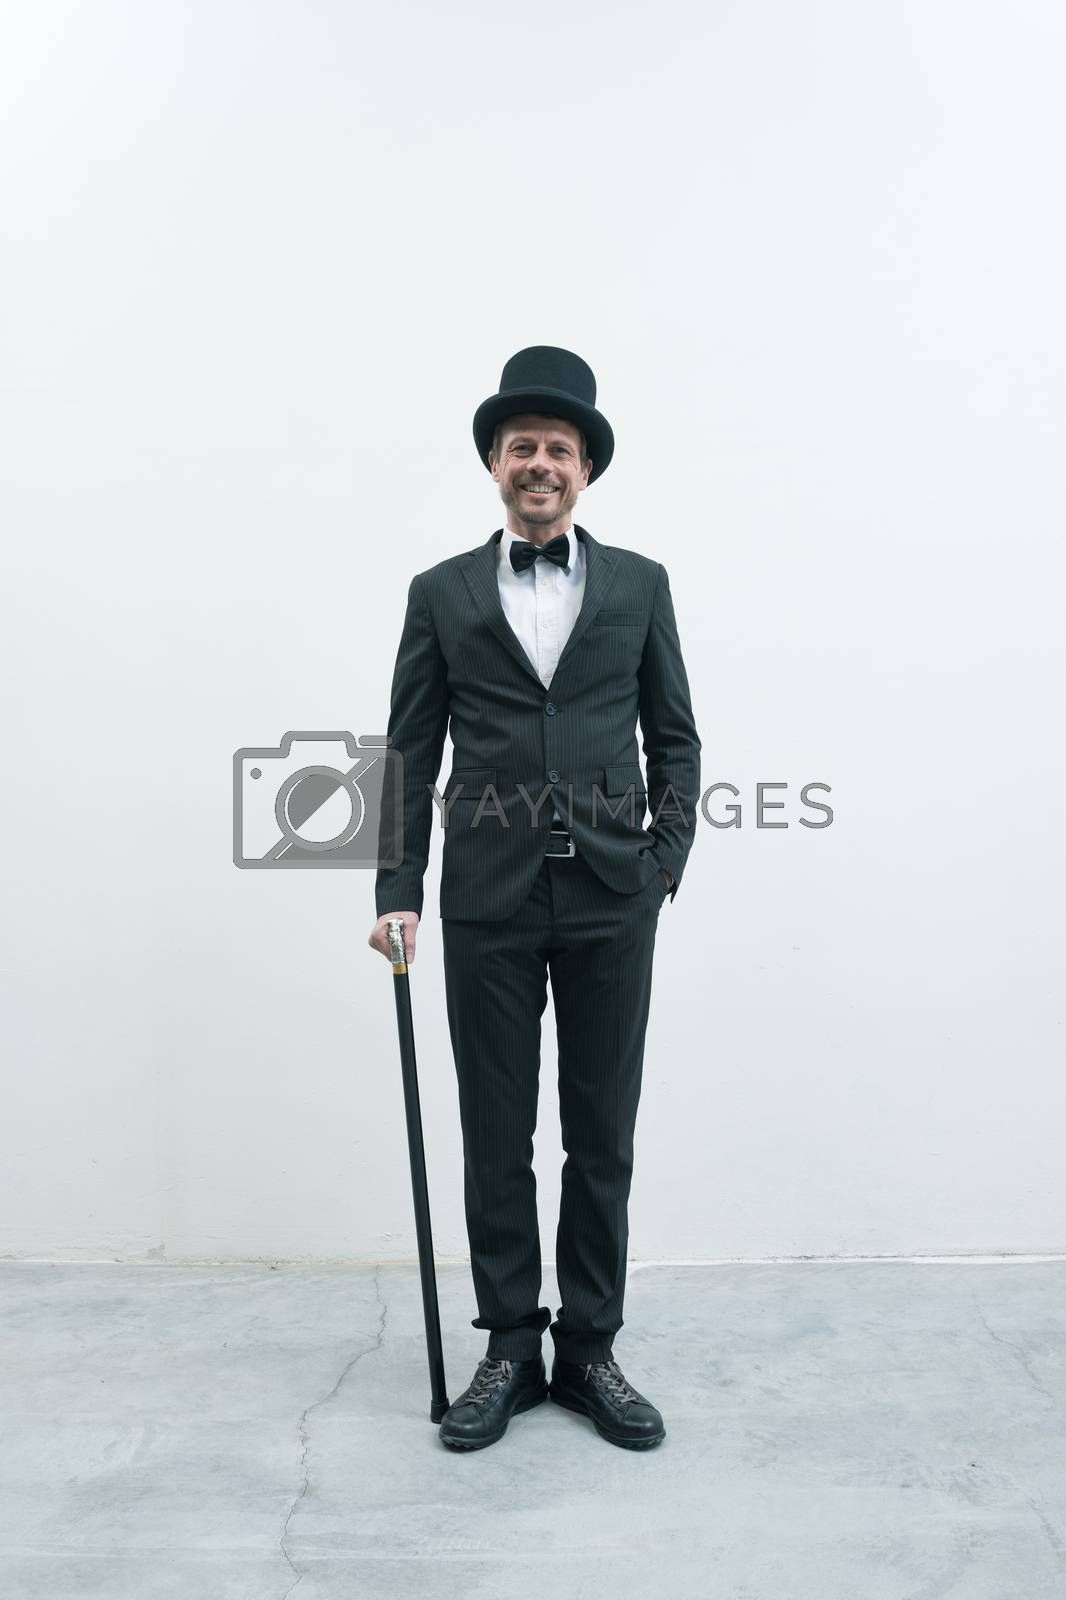 Classy smiling gentleman standing on white background and concrete floor in elegant suit with cane and bowler hat.